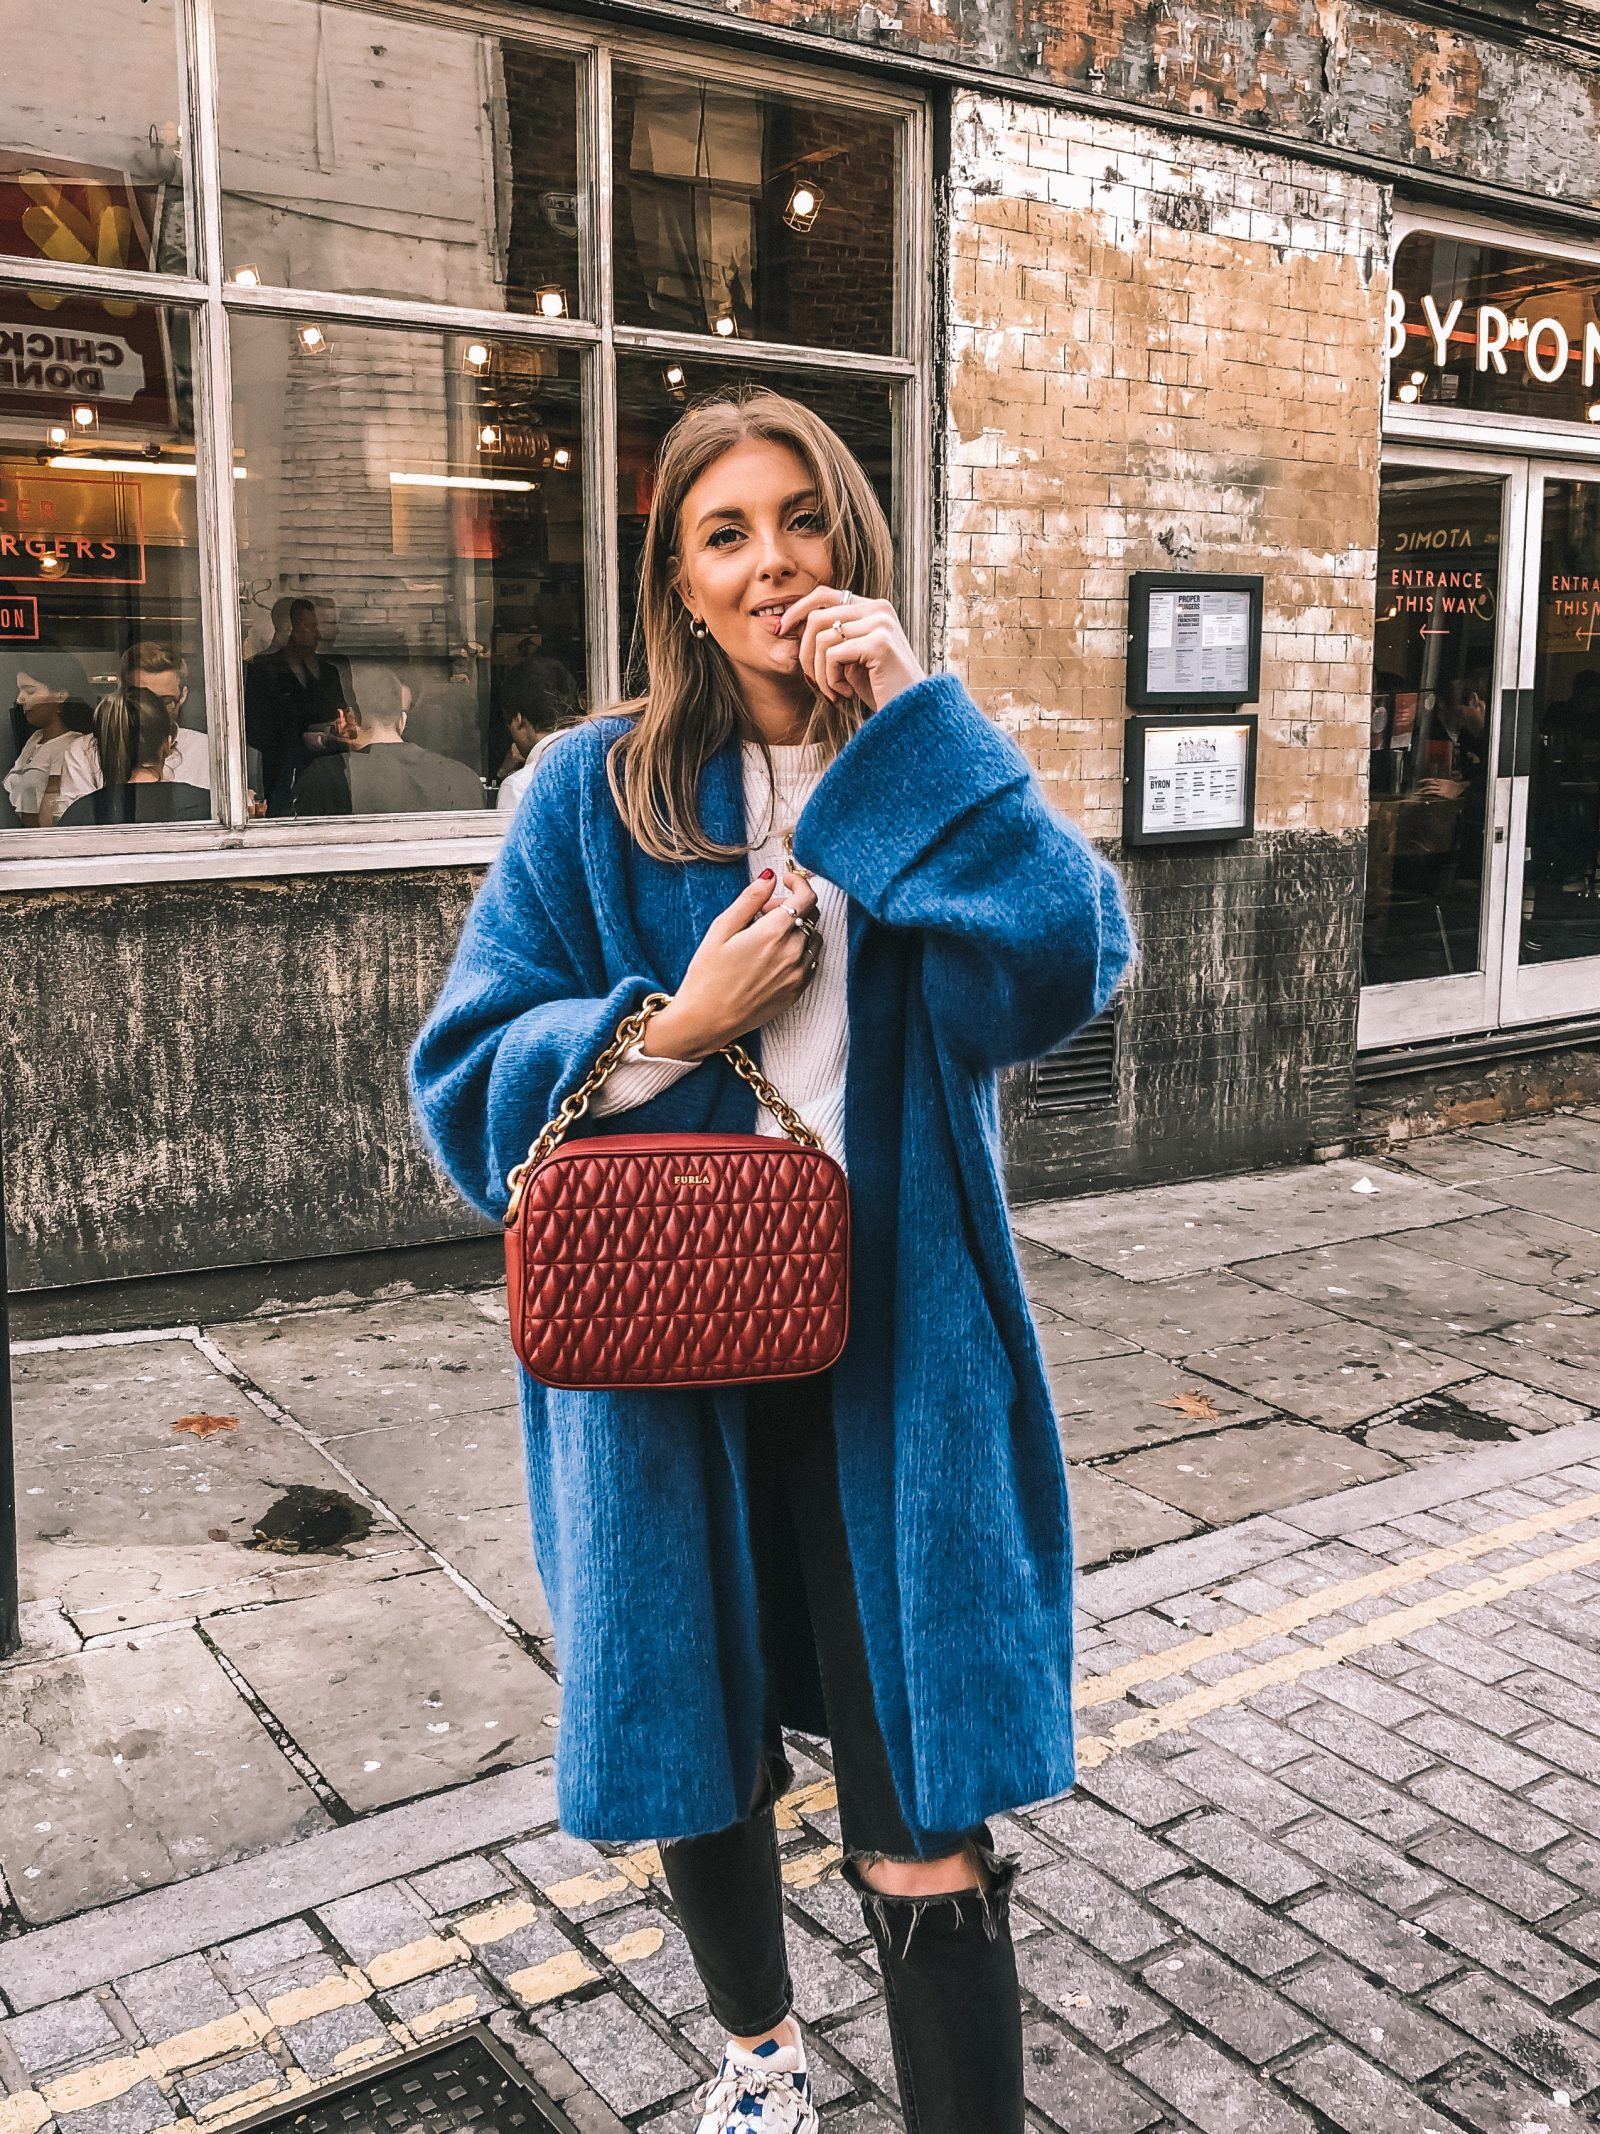 Best Knitwear - & Other Stories Blue Chunky Knit - London Street Style - Sinead Crowe